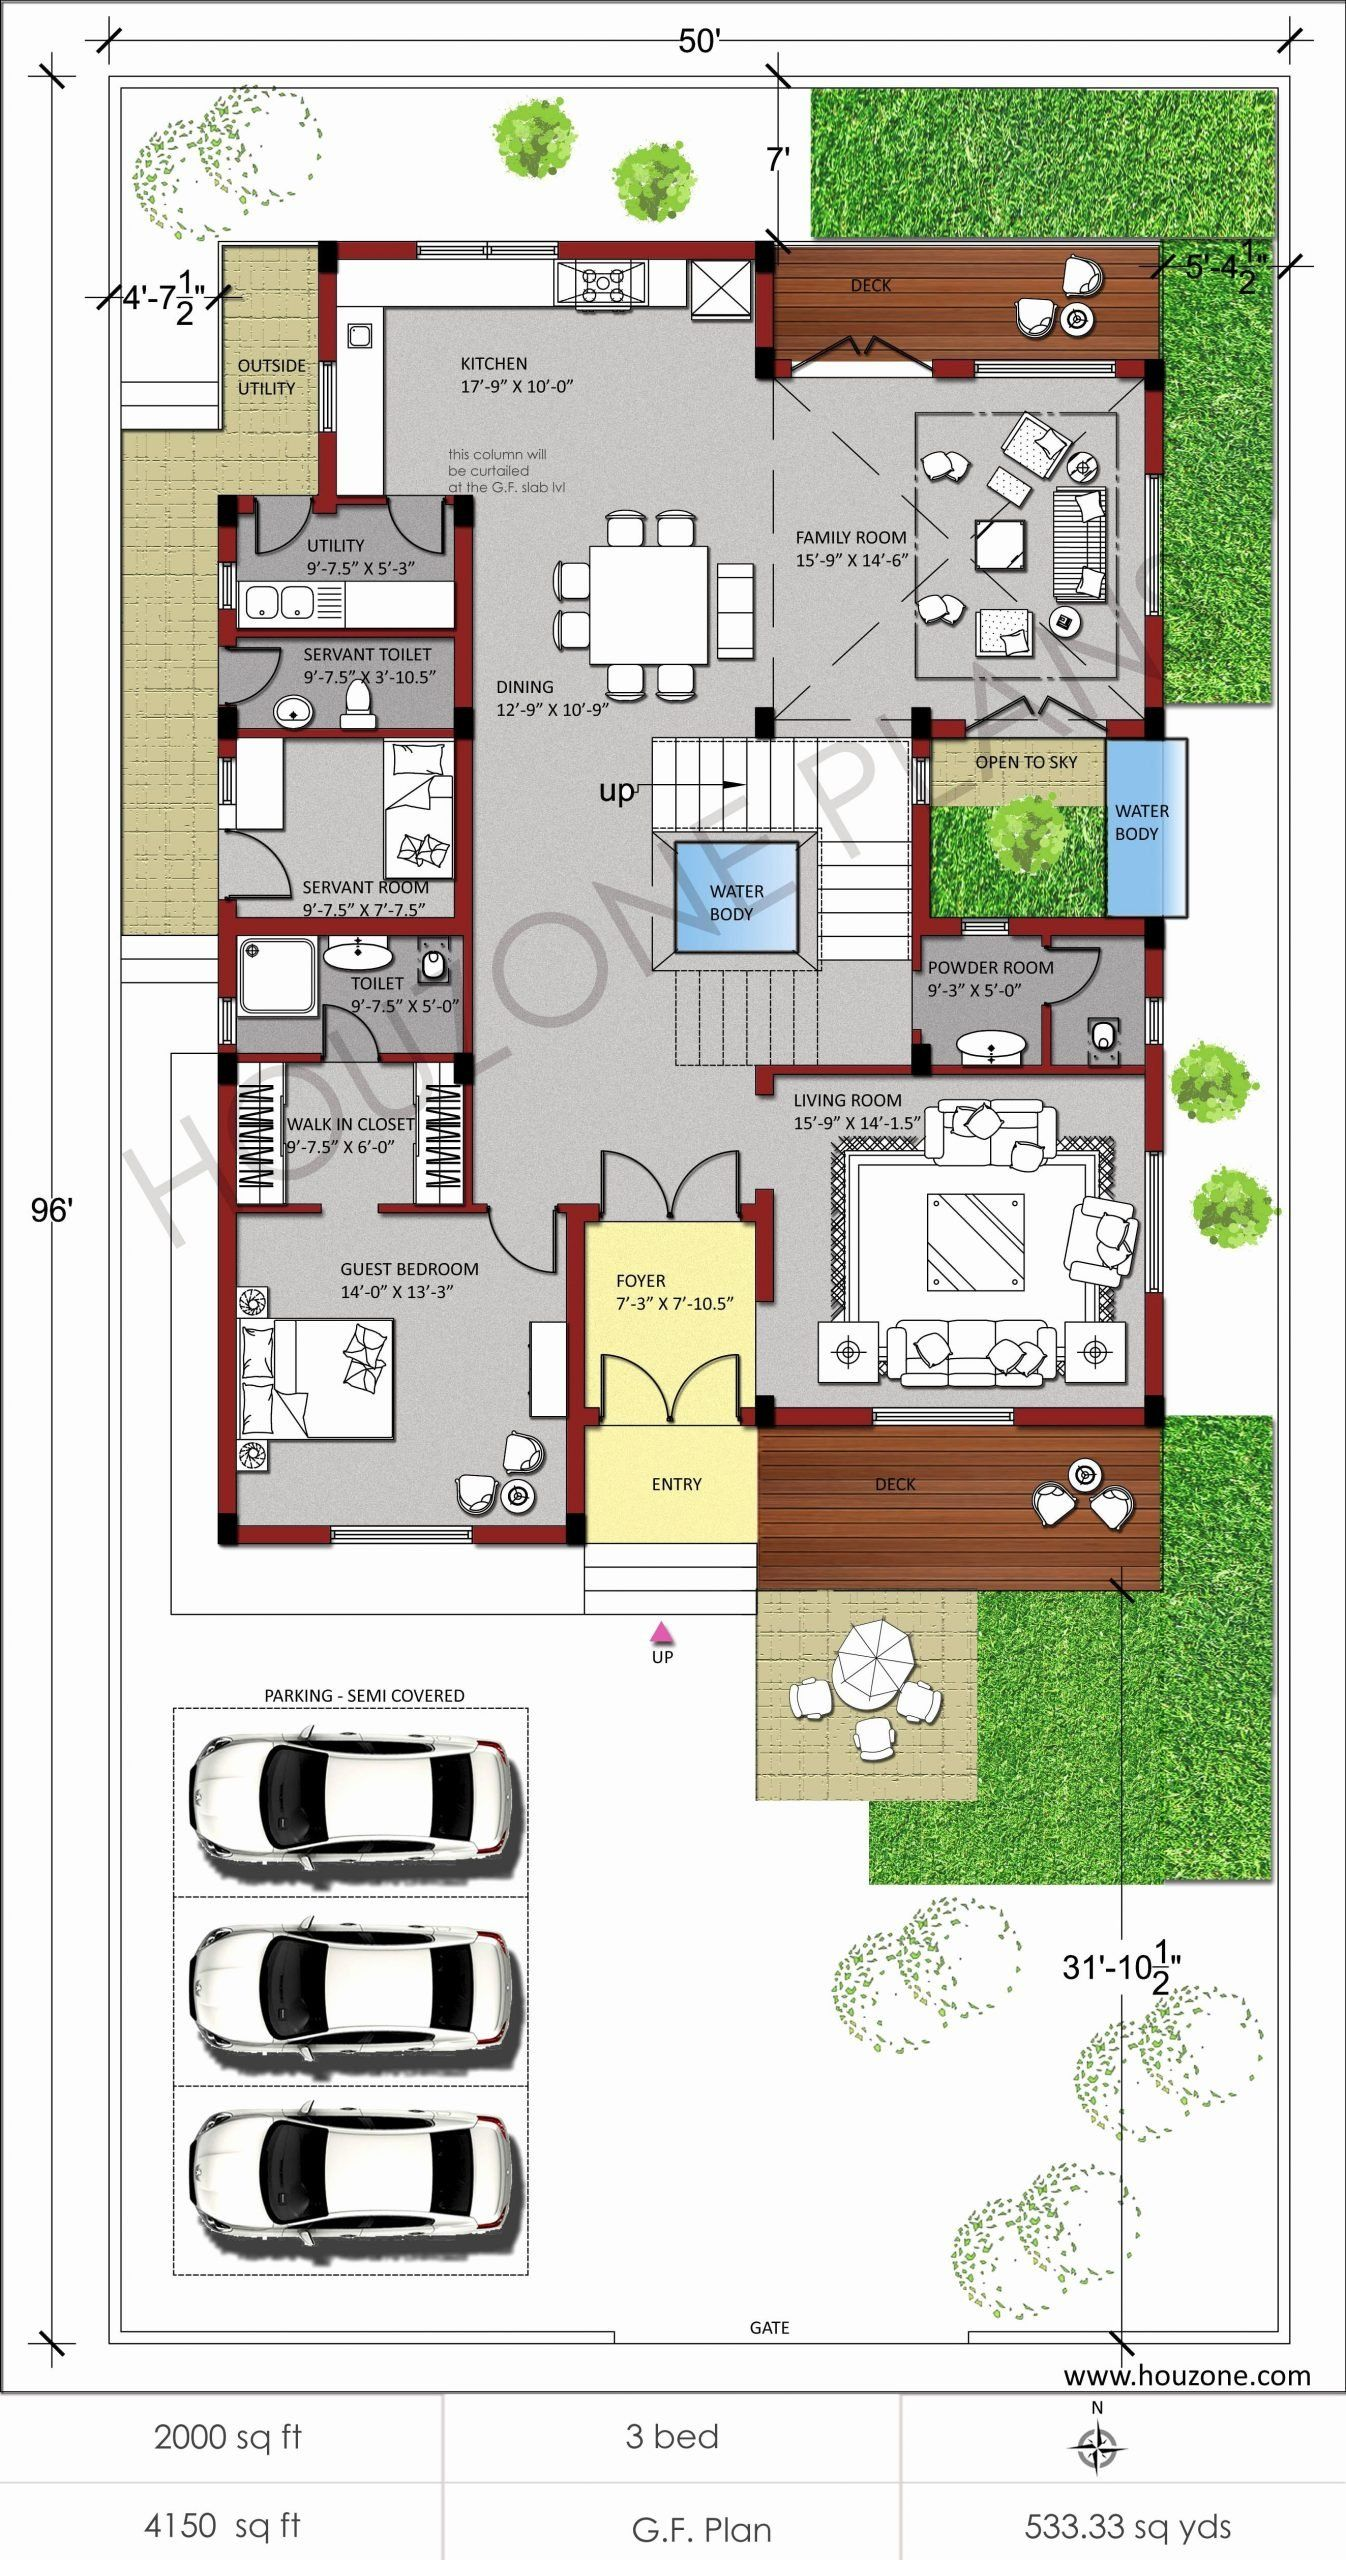 Modern House Floor Plans India Duplex House Floor Plans Indian Style Awesome Remarkable 700 In 2020 Beautiful House Plans Duplex House Plans Vastu House